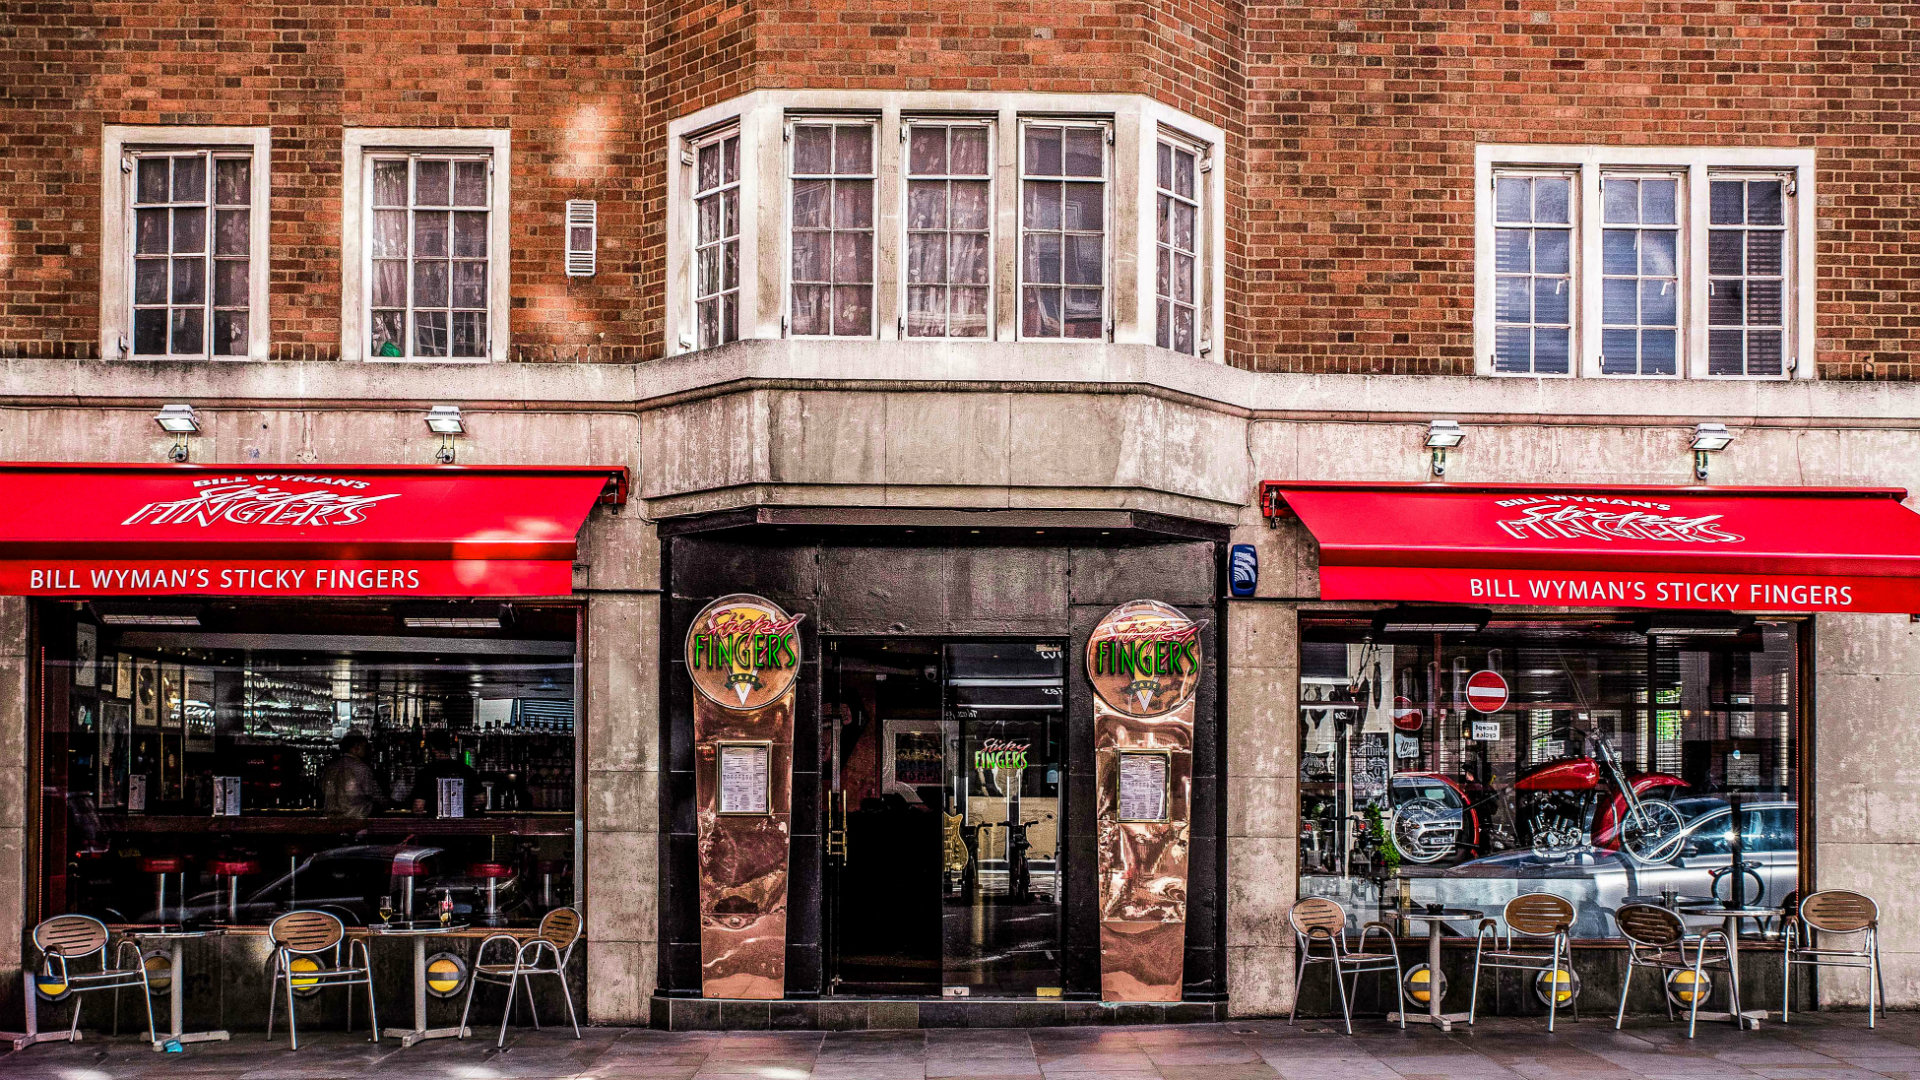 Exterior shot of Sticky Fingers restaurant in London